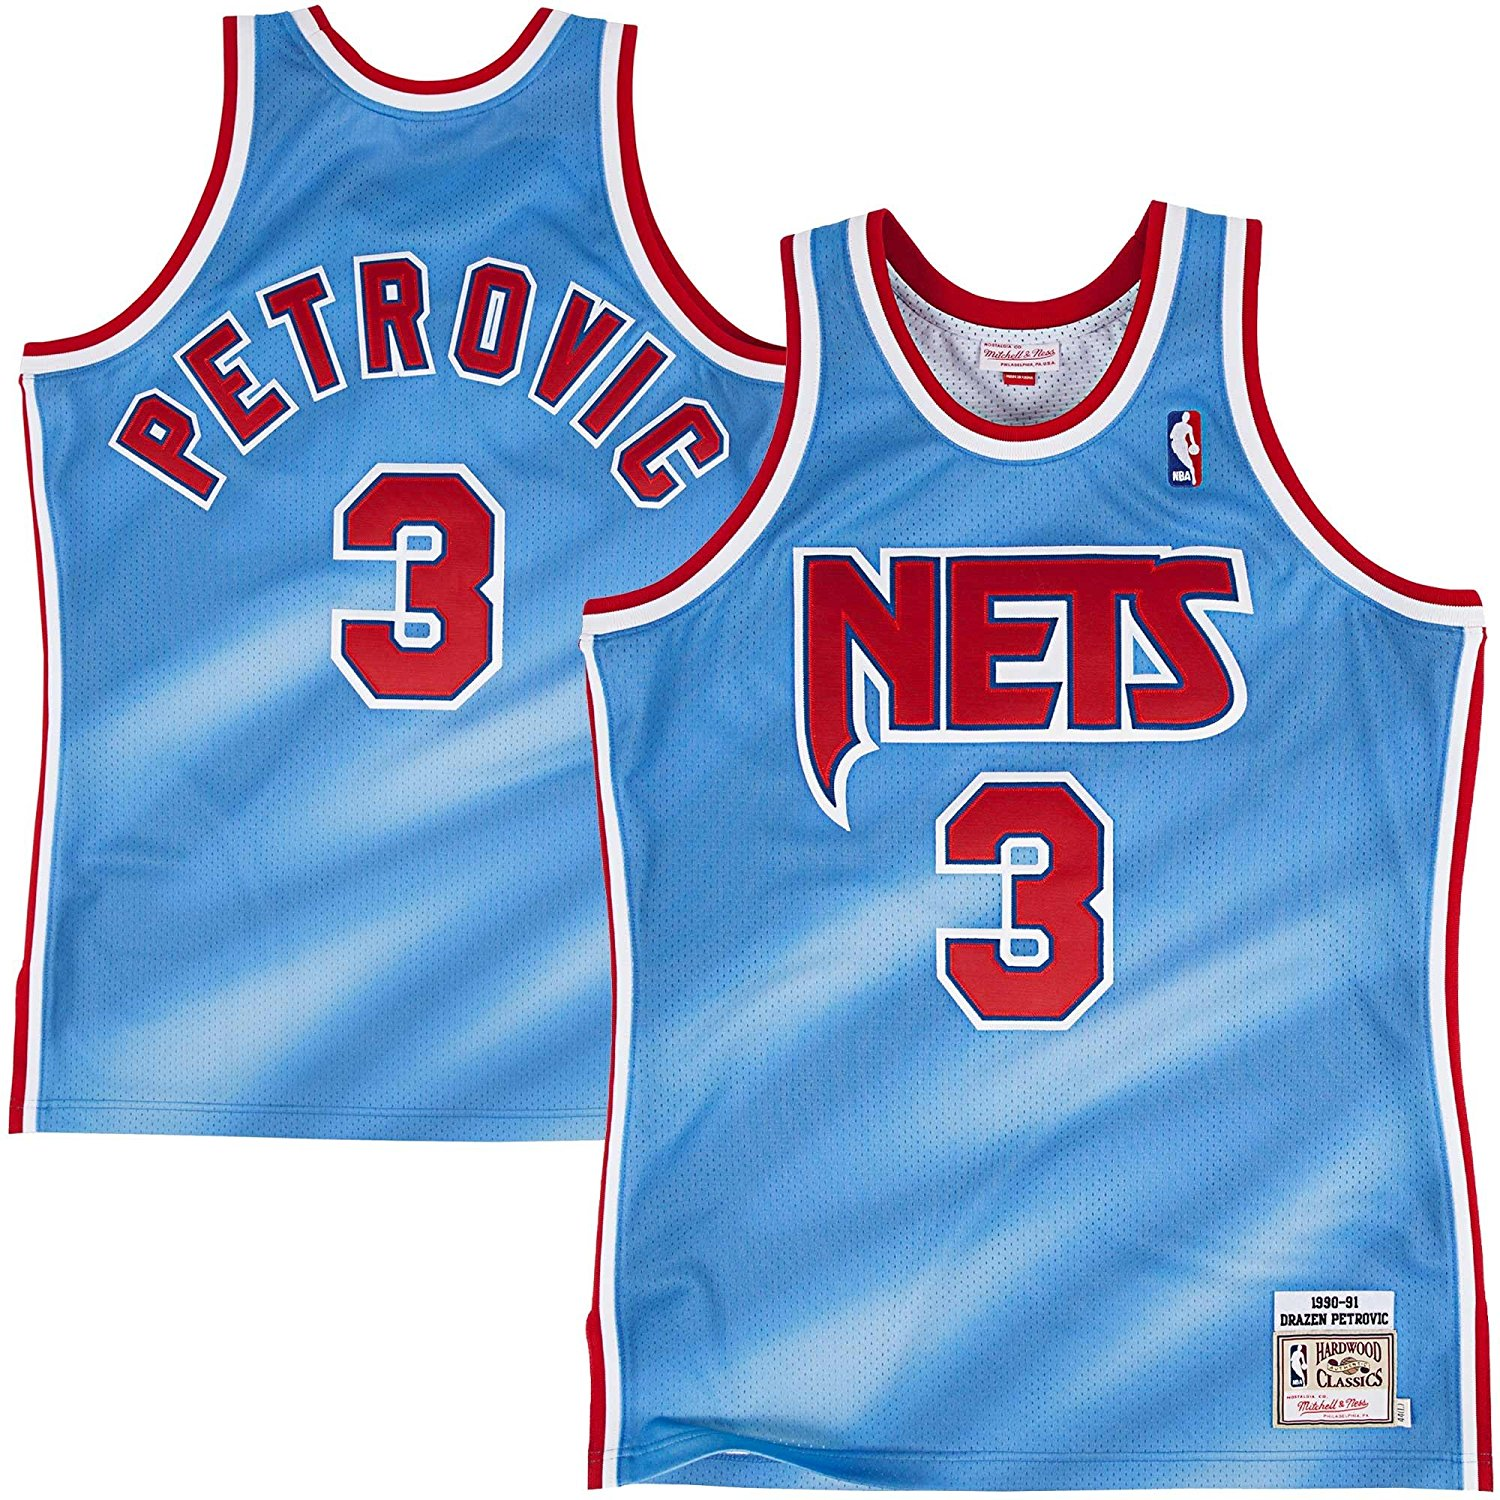 Drazen Petrovic New Jersey Nets Mitchell & Ness Authentic 1990-91 NBA Jersey